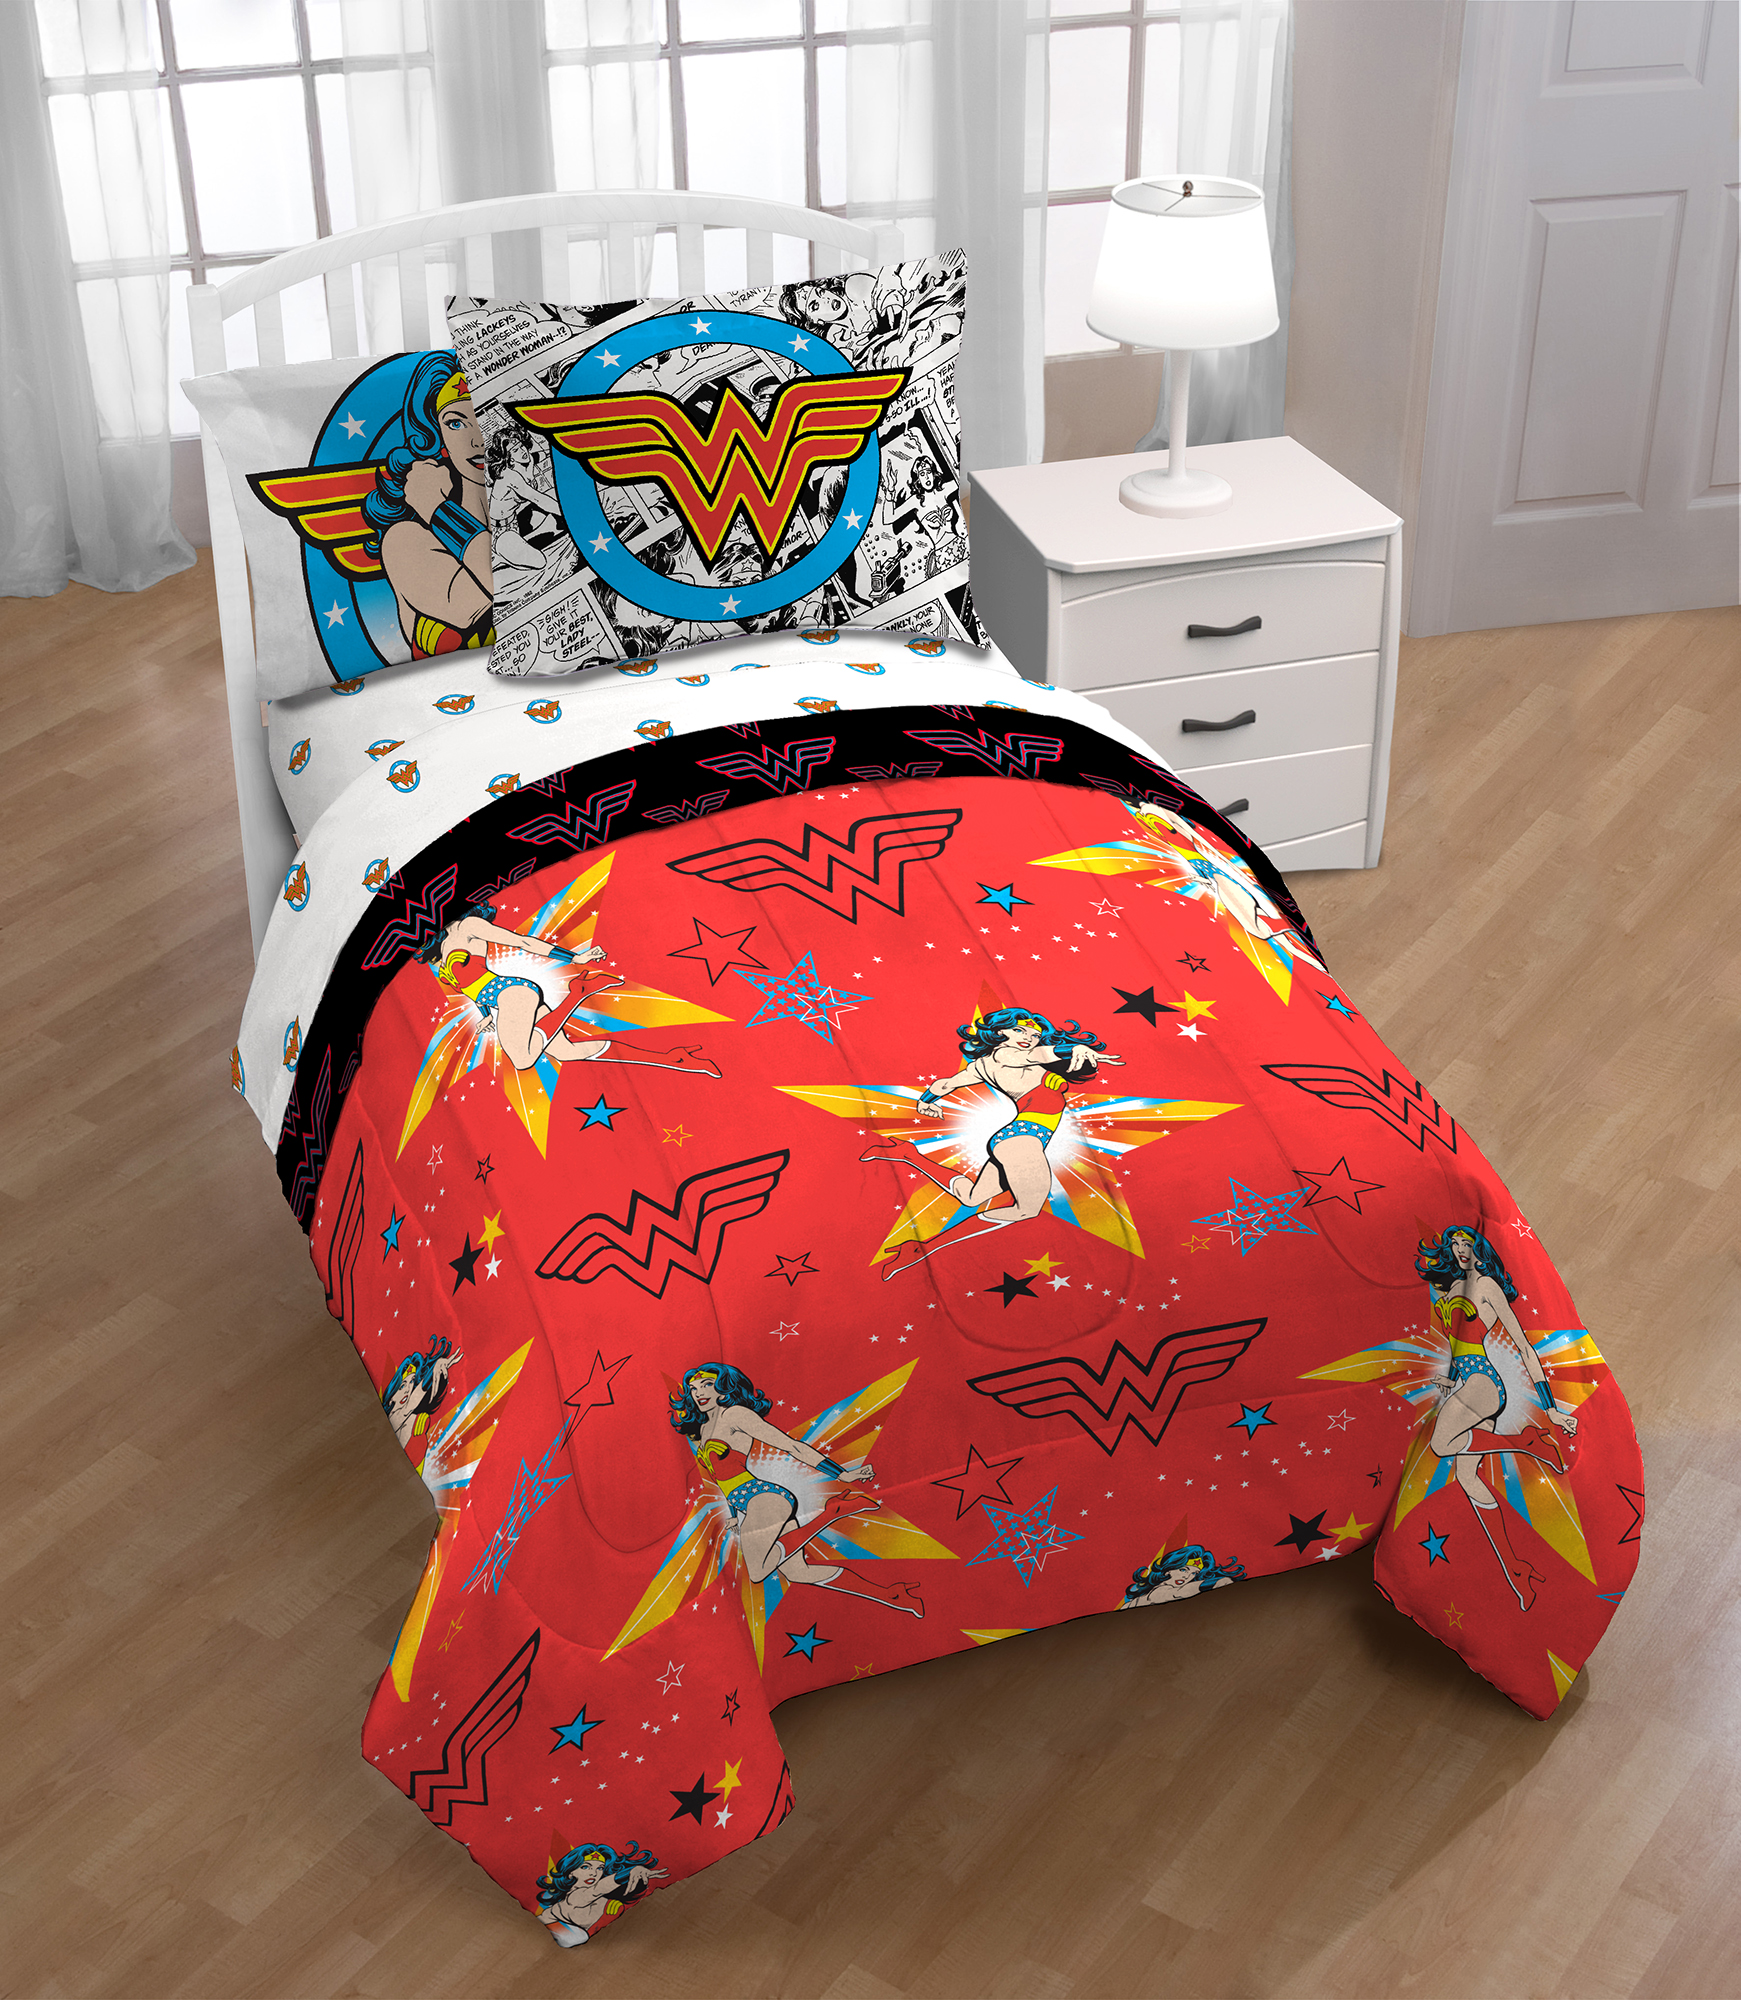 "Wonder Woman ""Star of Justice"" Kids Twin Bed in a Bag Bedding Set by Franco Manufacturing"